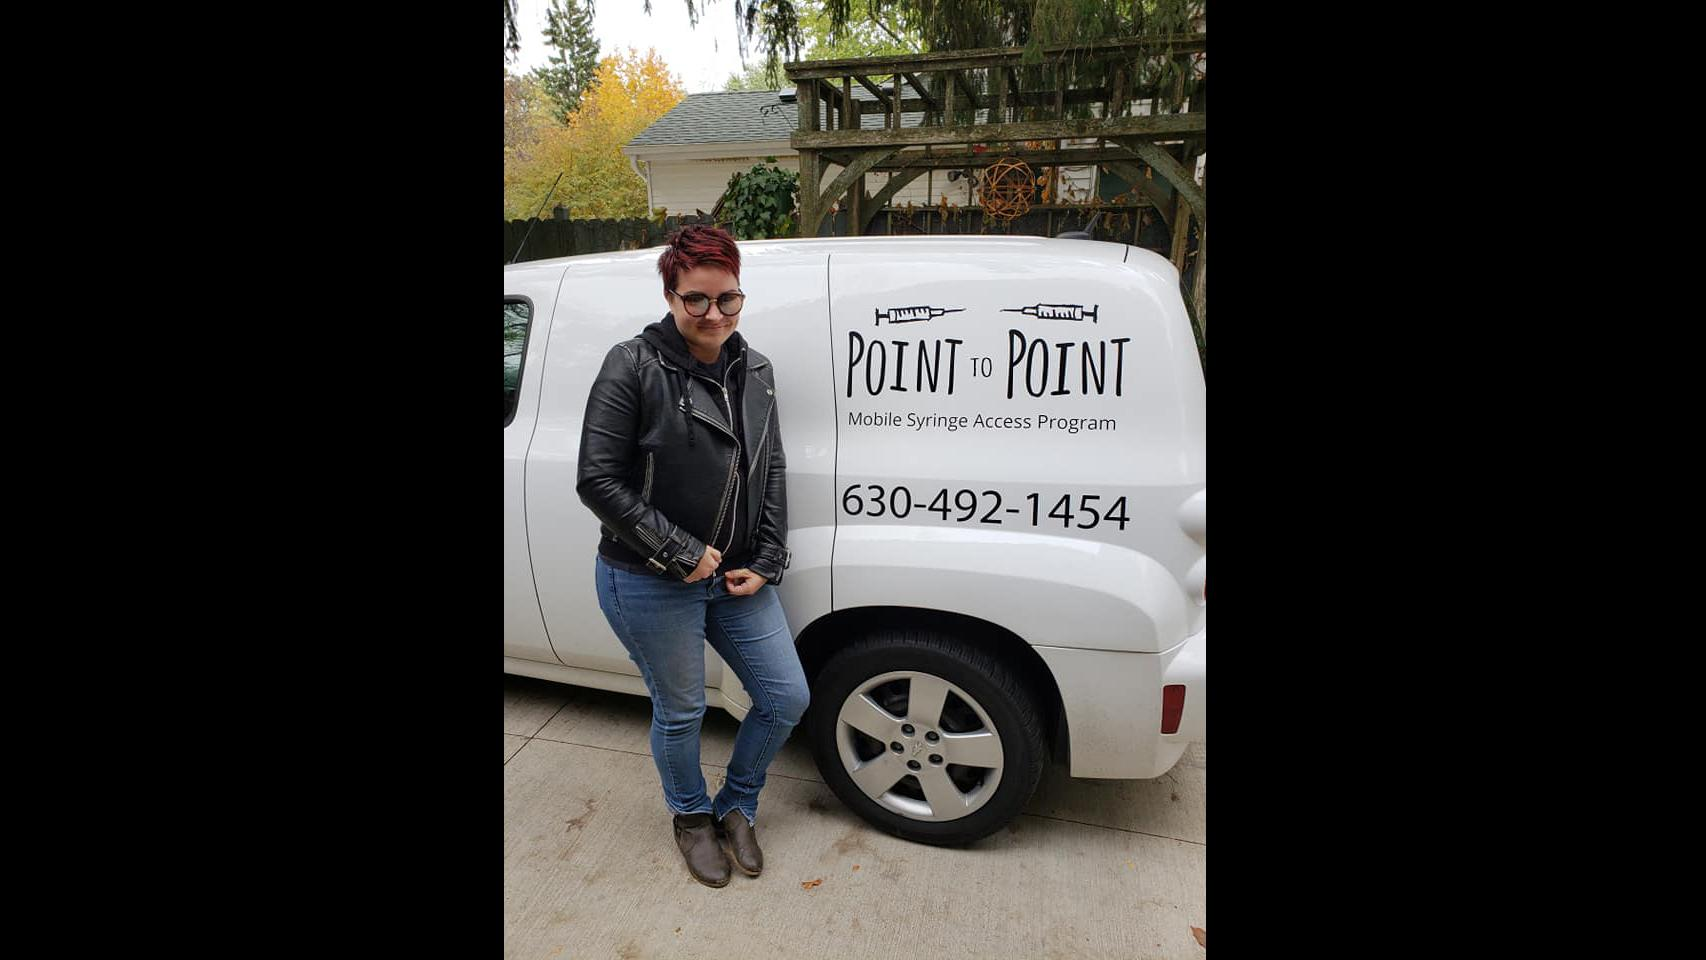 Batavia resident Lyndsay Hartman has been running Point to Point, a mobile syringe exchange program, in Kane county for about a year. (Point to Point / Facebook)